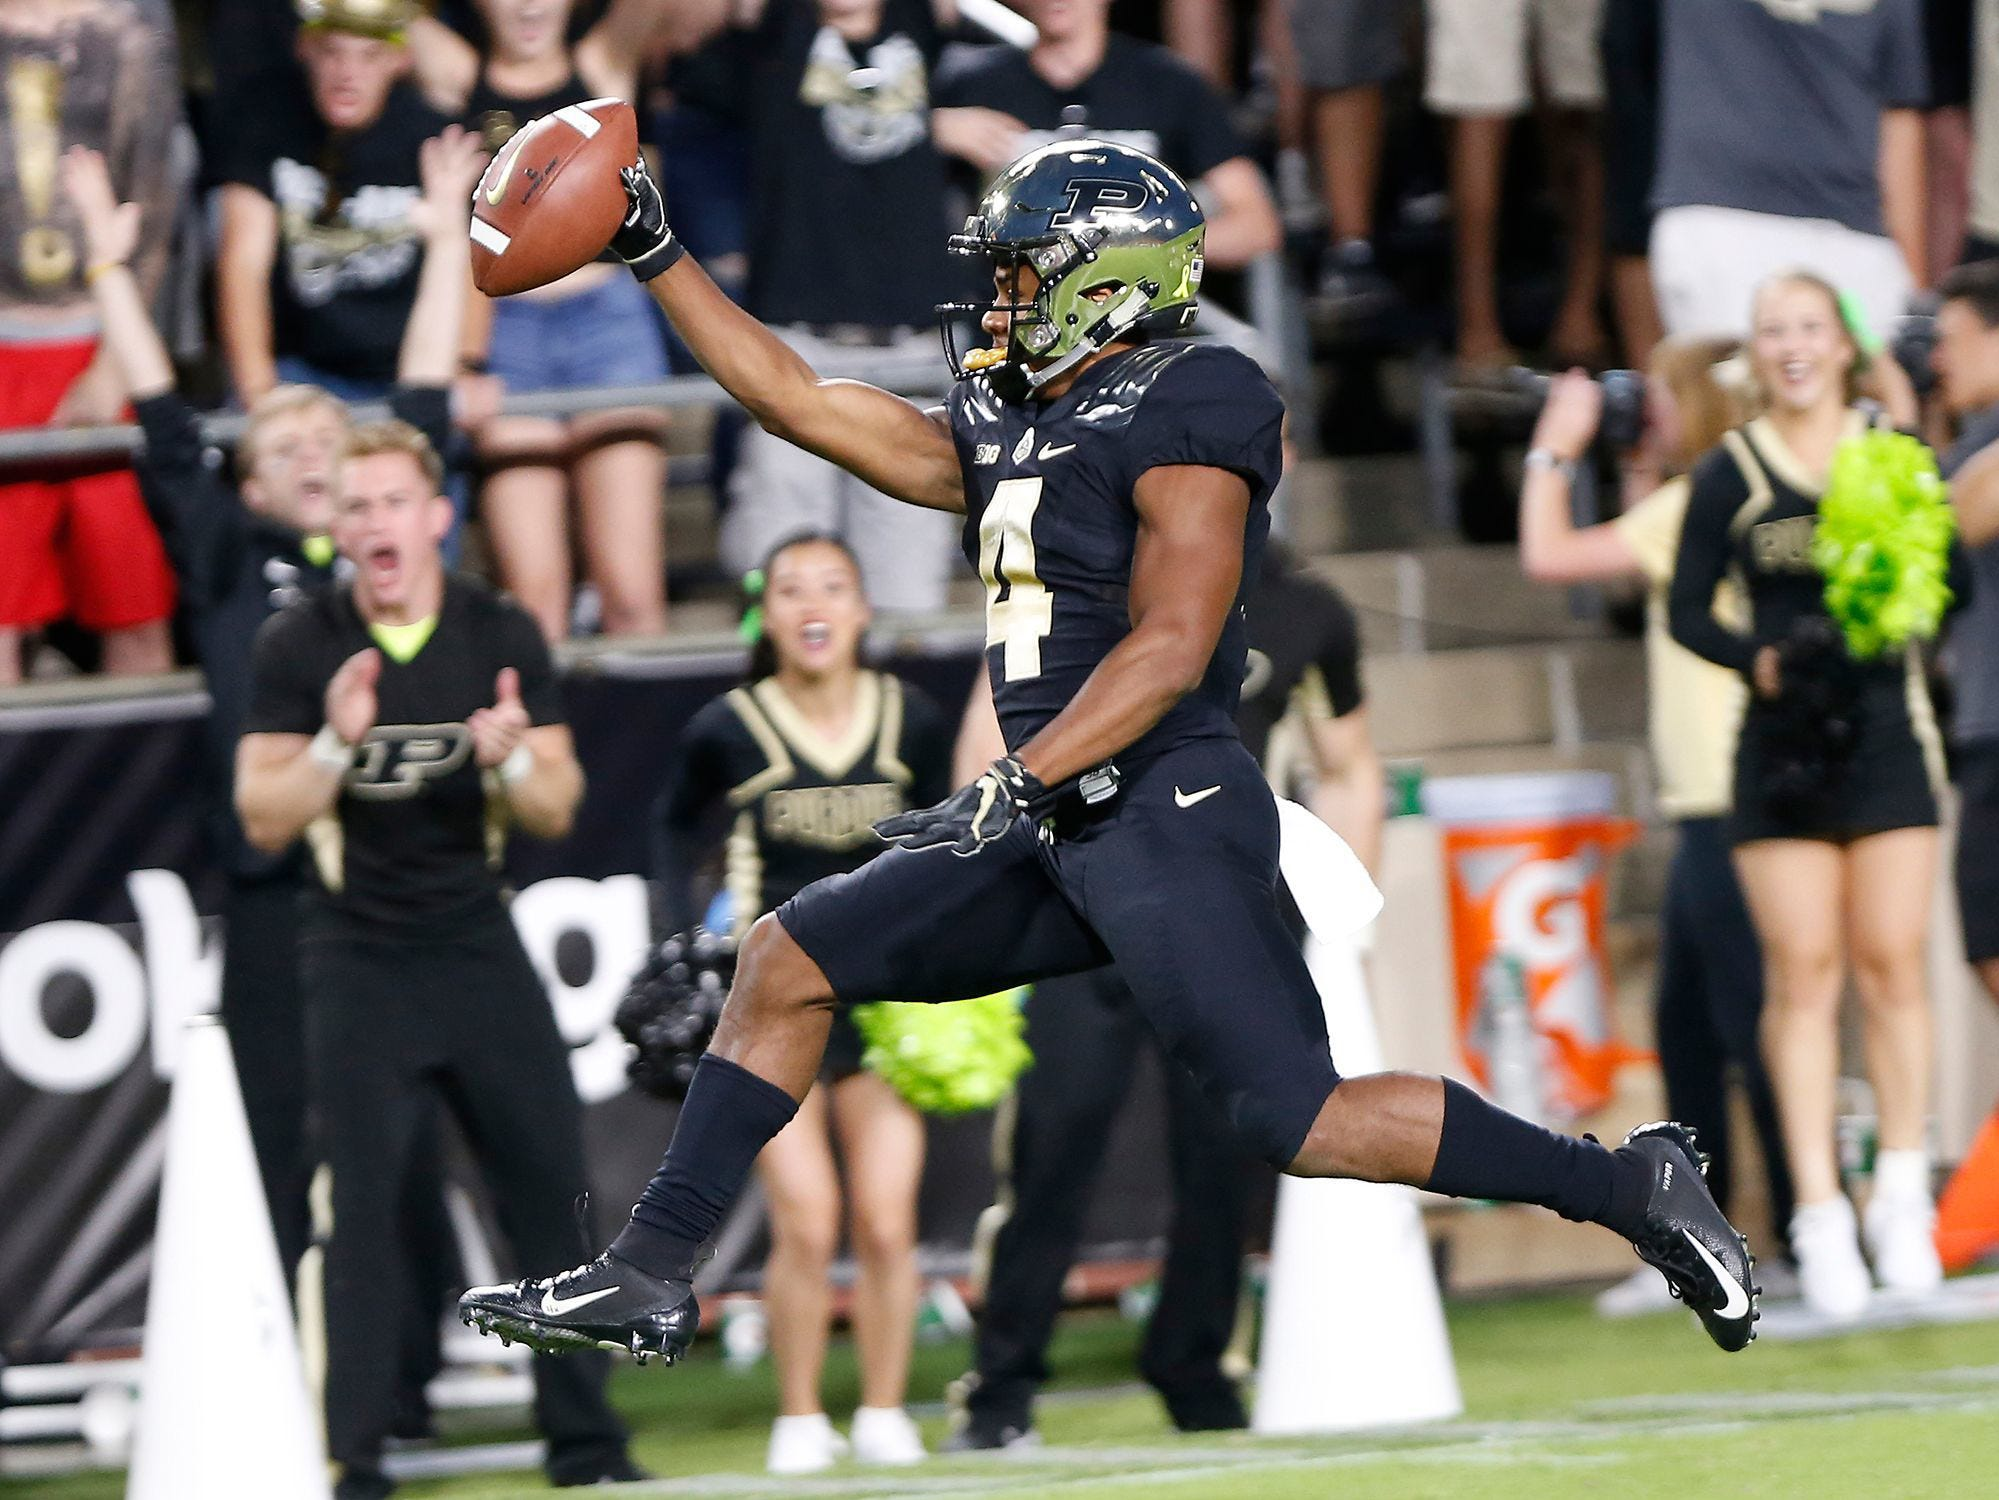 Purdue's Rondale Moore races to the end zone for a touchdown against Northwestern during the first half of an NCAA college football game Thursday, Aug. 30, 2018, in West Lafayette, Ind.